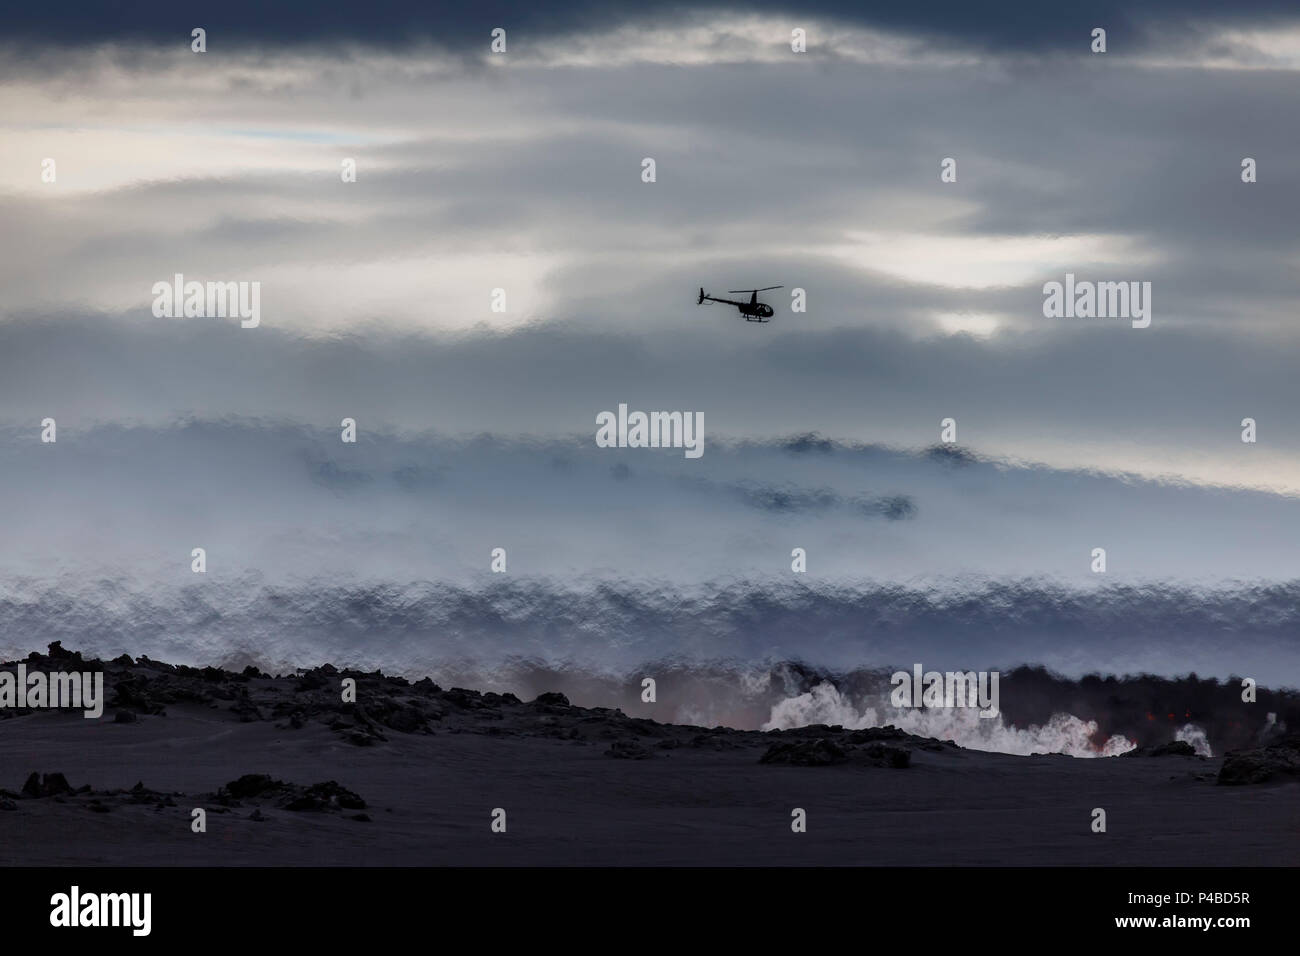 Helicopter flying over the volcano eruption at the Holuhruan Fissure, near the Bardarbunga Volcano, Iceland. August 29, 2014 a fissure eruption started in Holuhraun at the northern end of a magma intrusion, which had moved progressively north, from the Bardarbunga volcano. - Stock Image